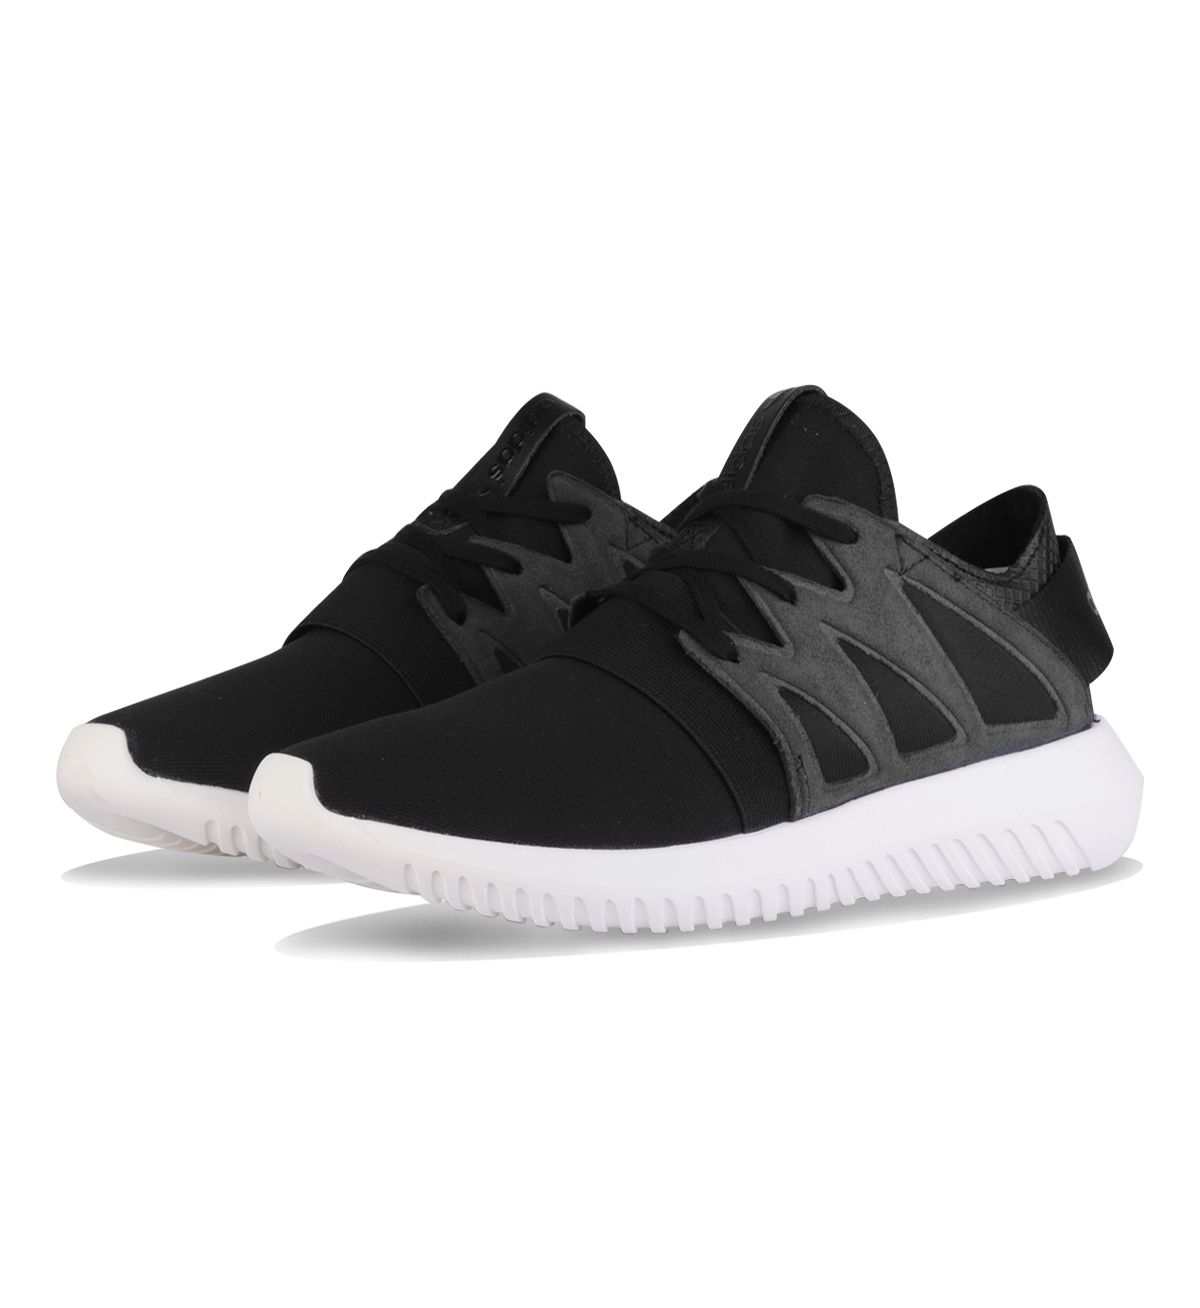 Adidas Originals WMNS Tubular Viral Core Black Off White